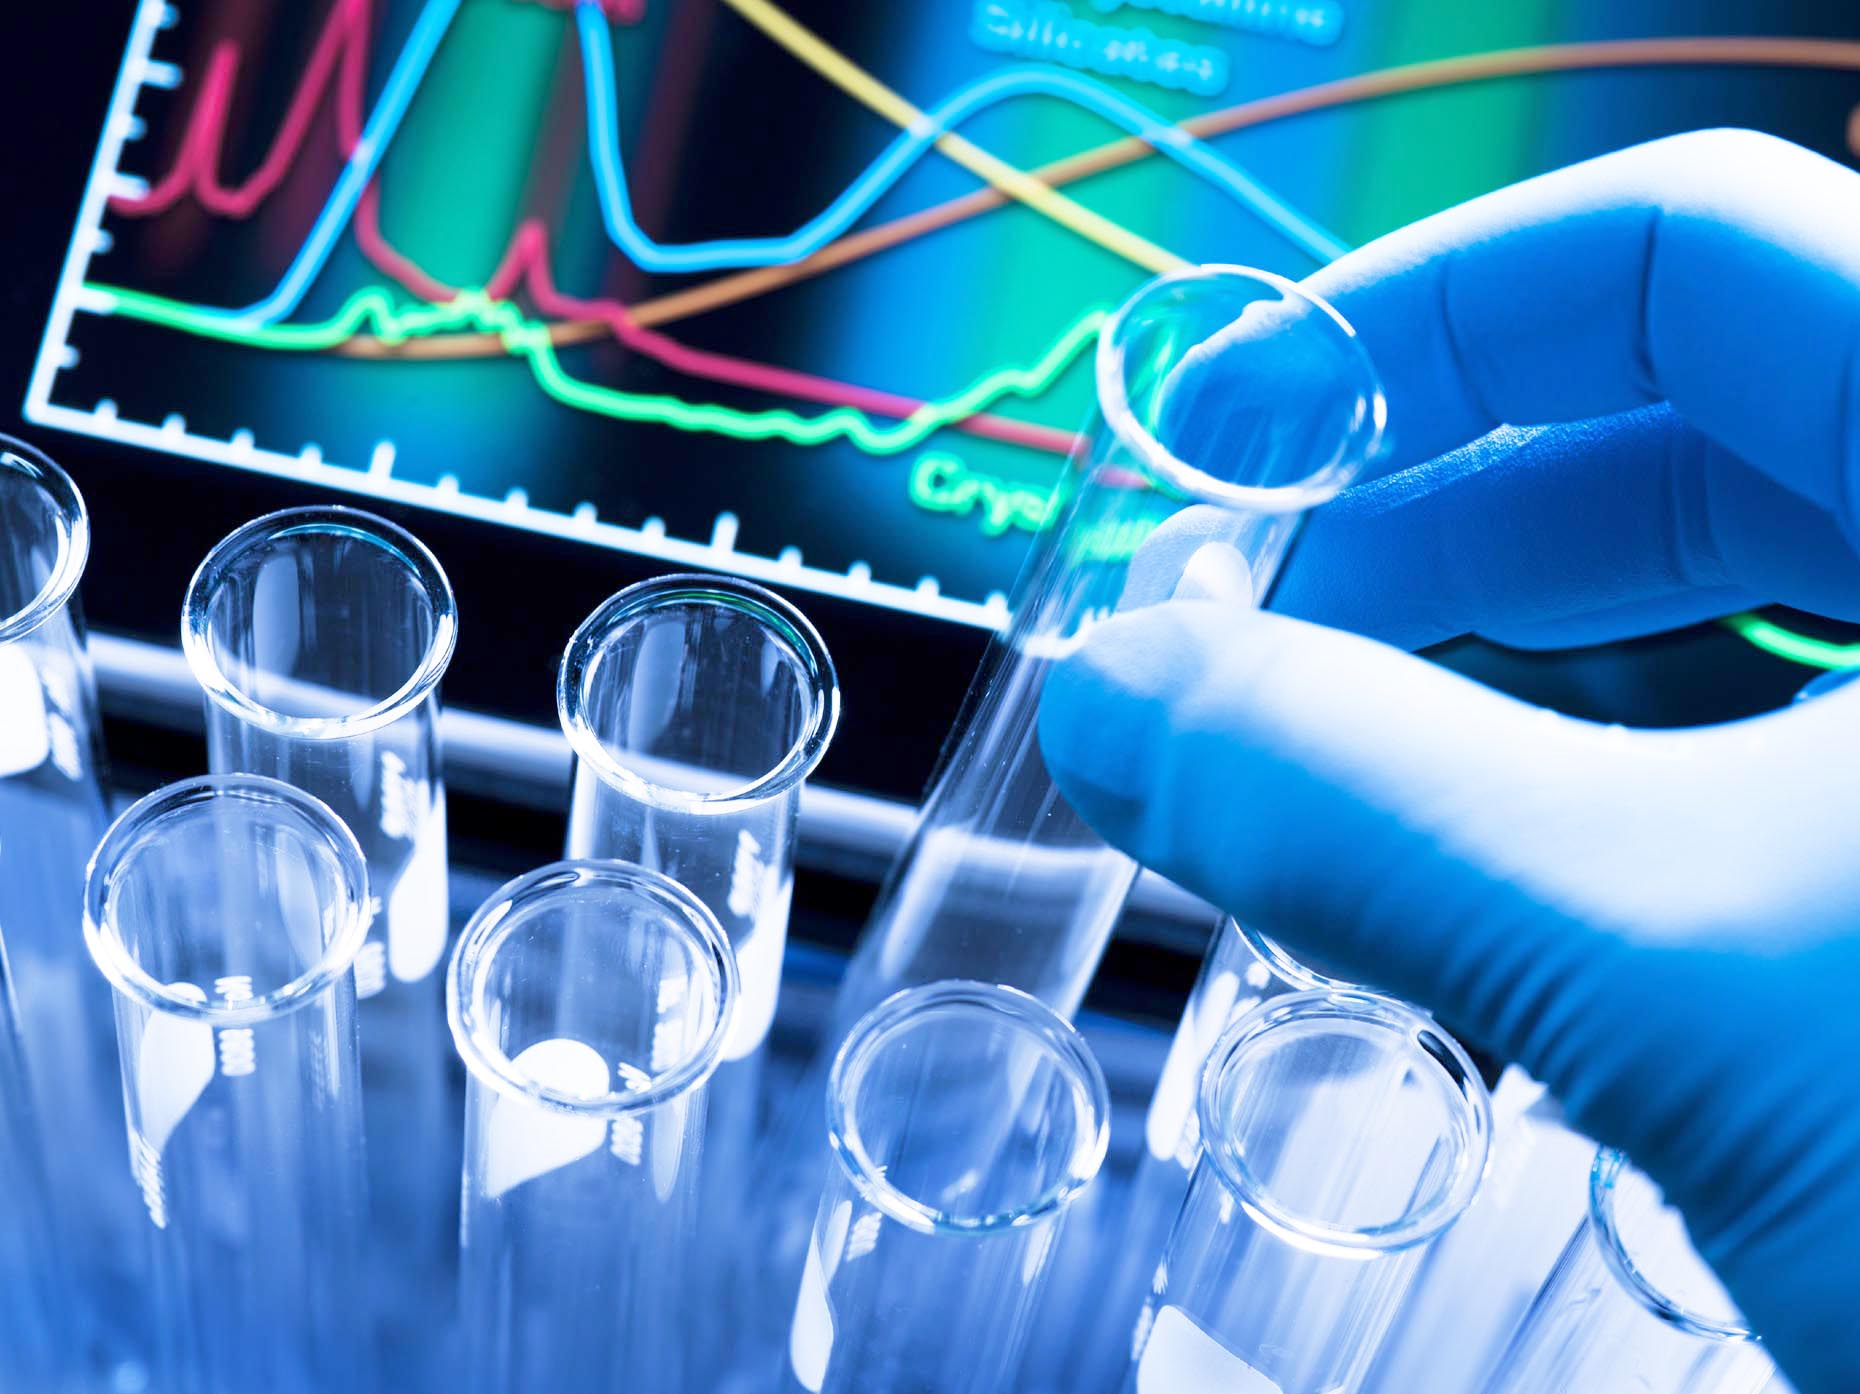 UDOM plans introducing biomedical science studies